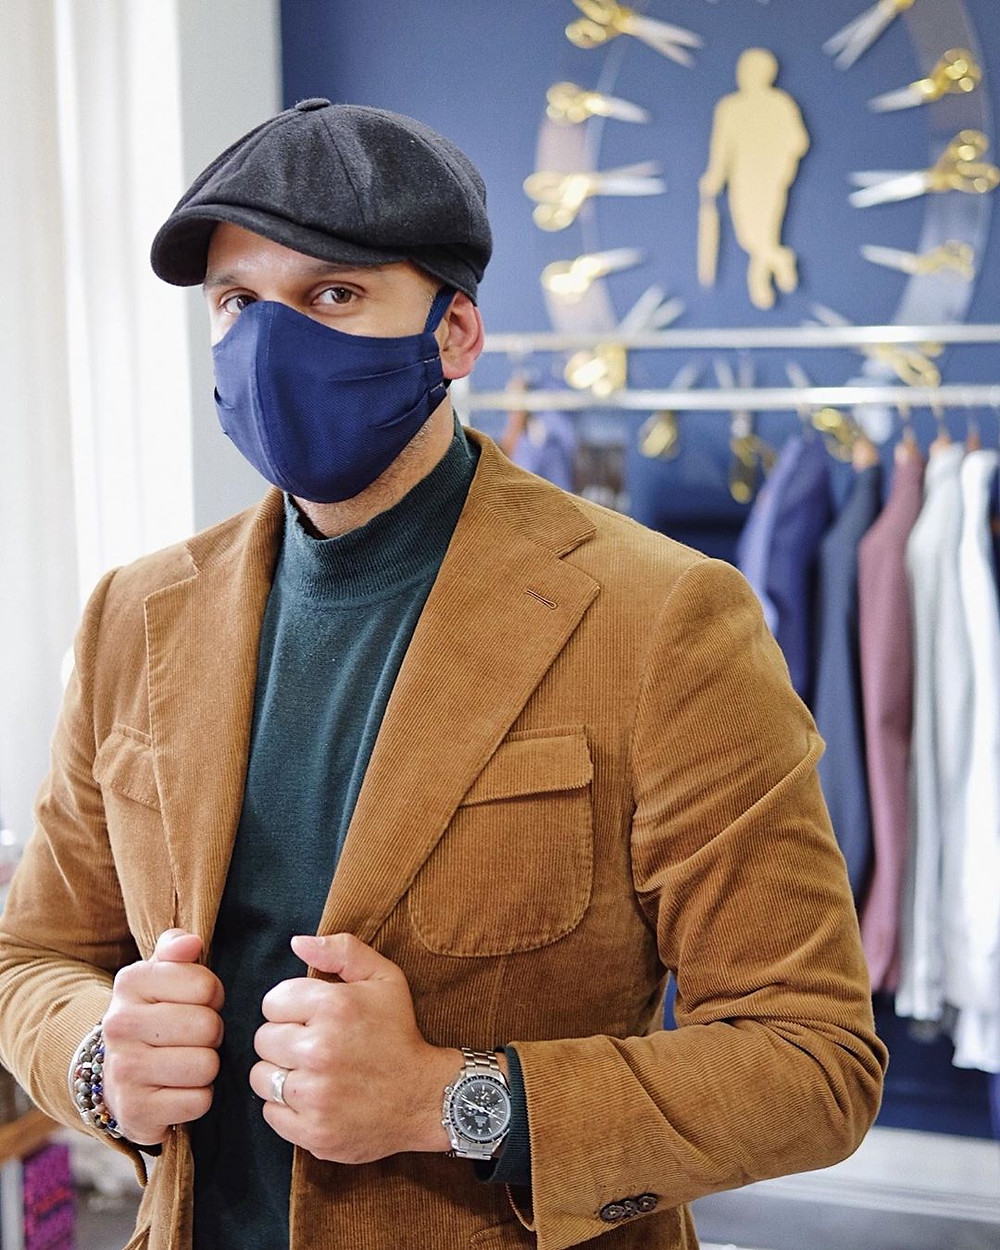 Jason Sarai, Style by Sarai, face mask, face covering